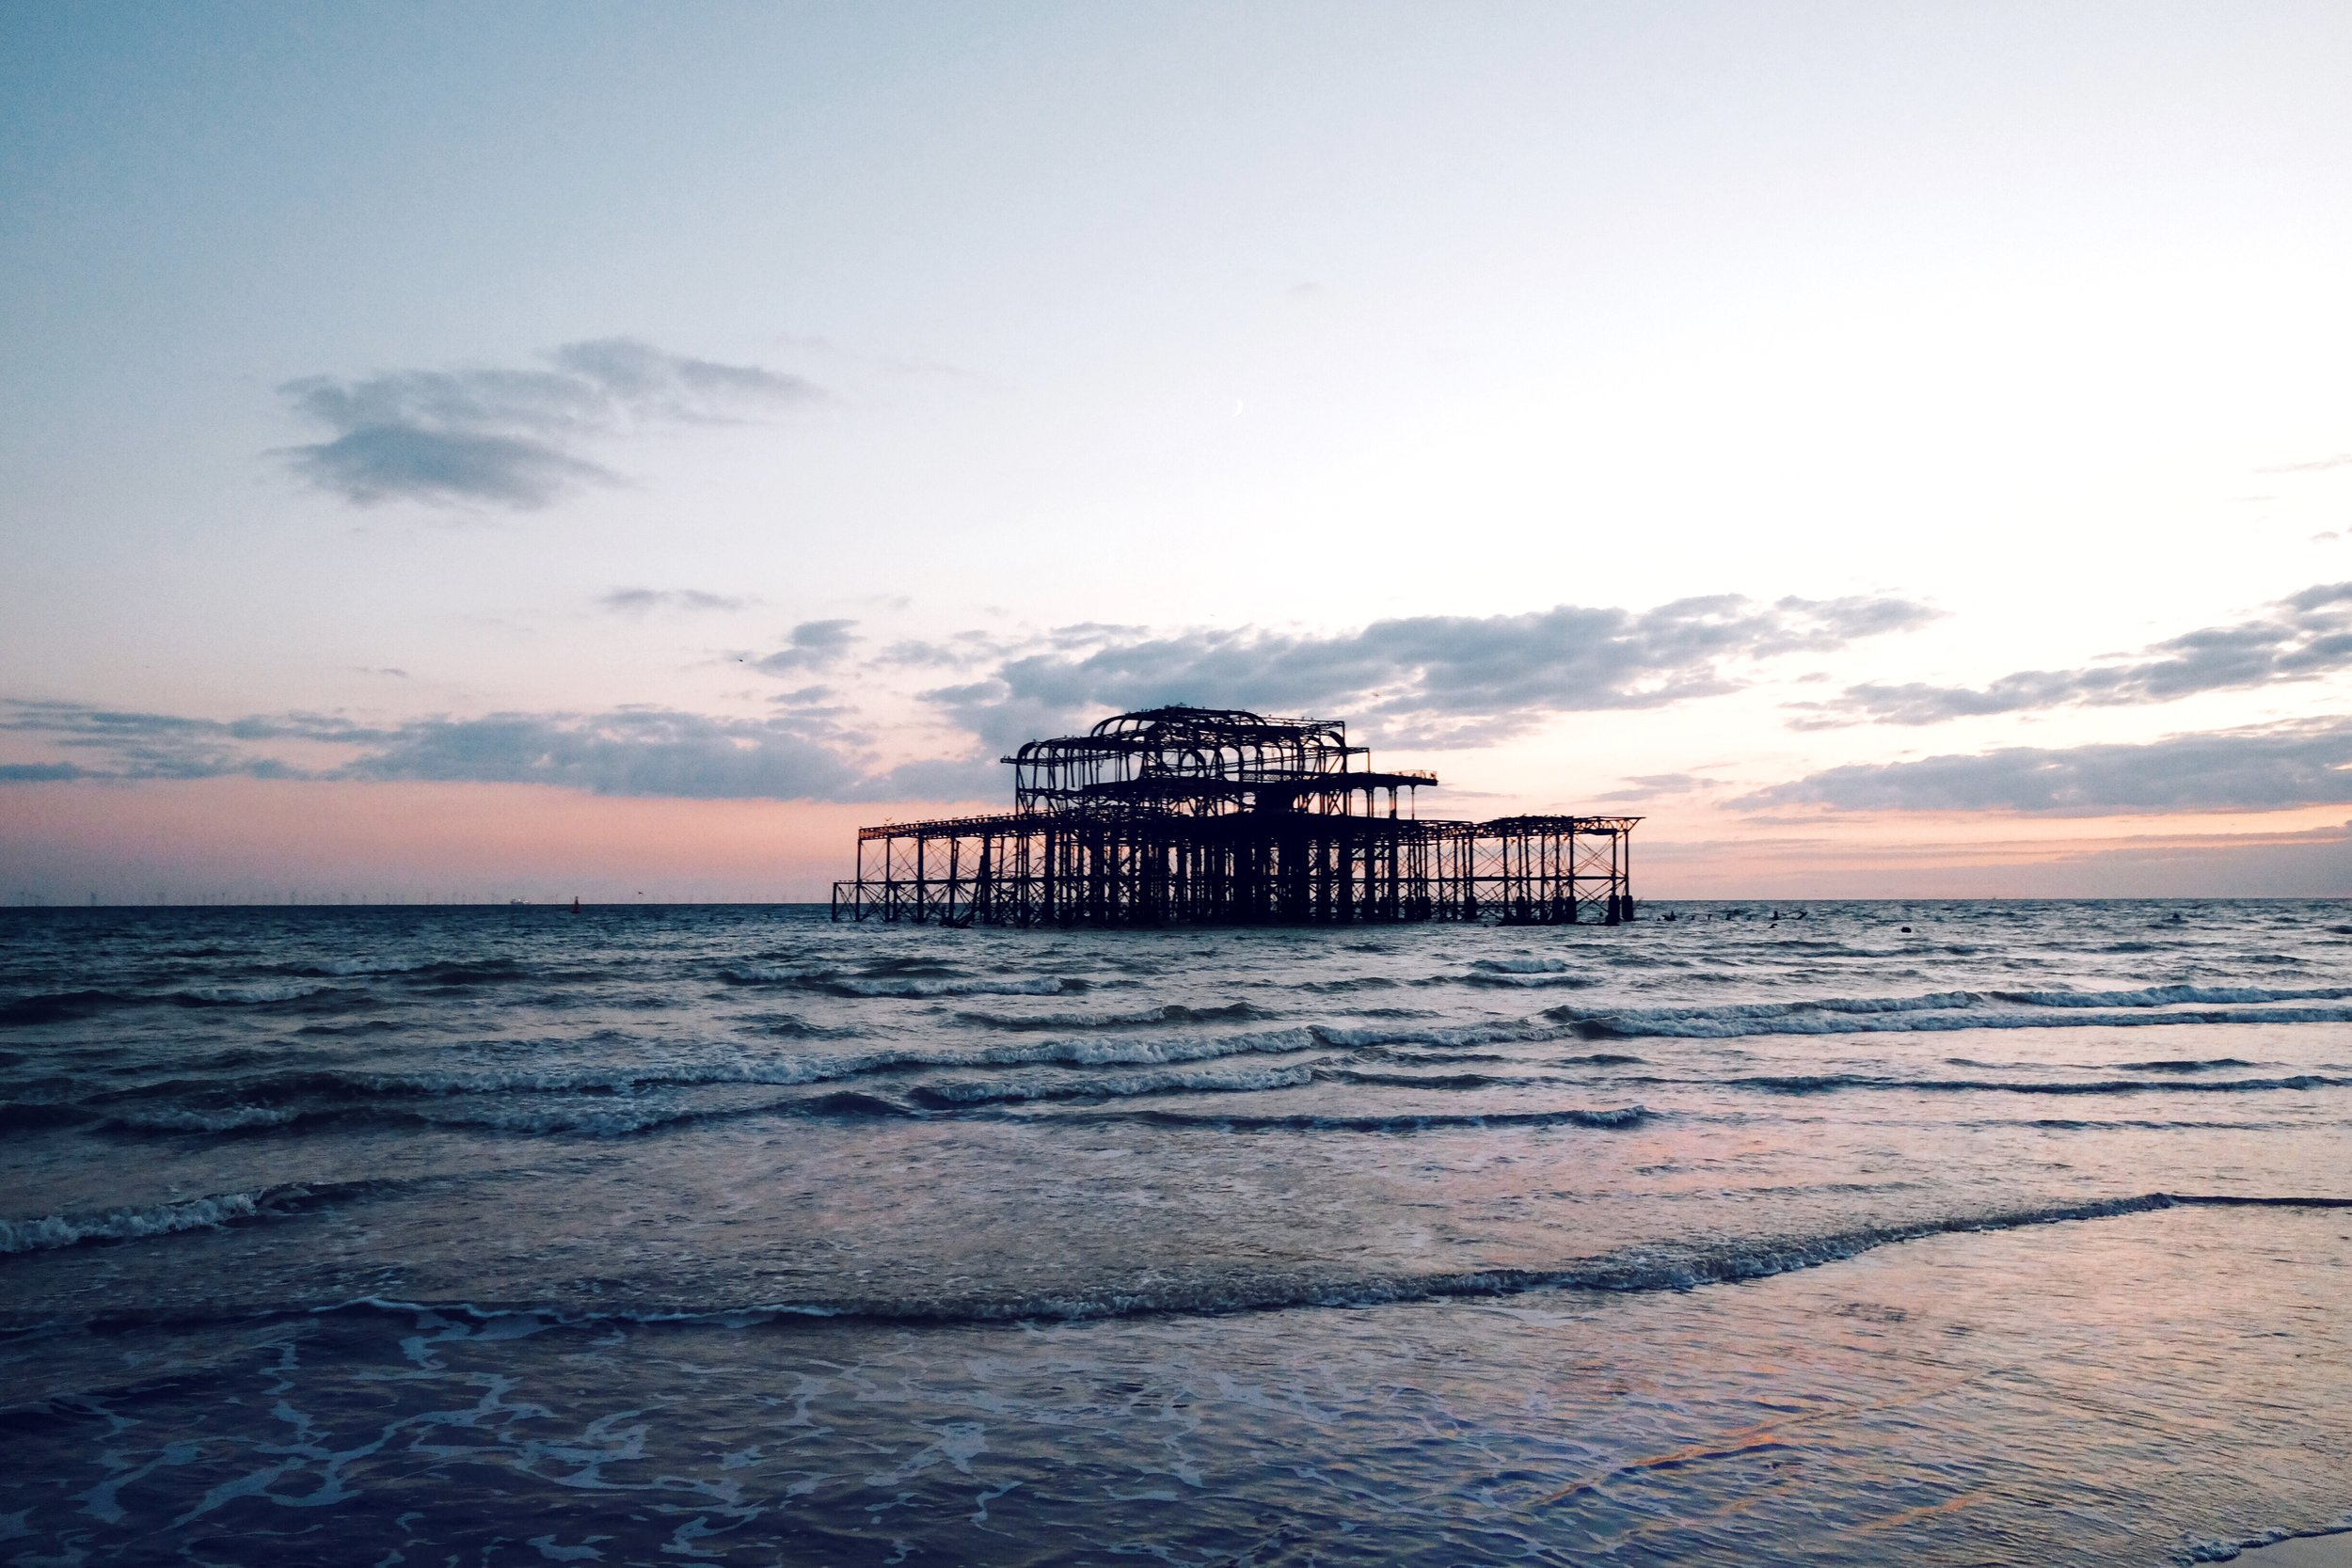 Brighton's iconic & majestic west pier